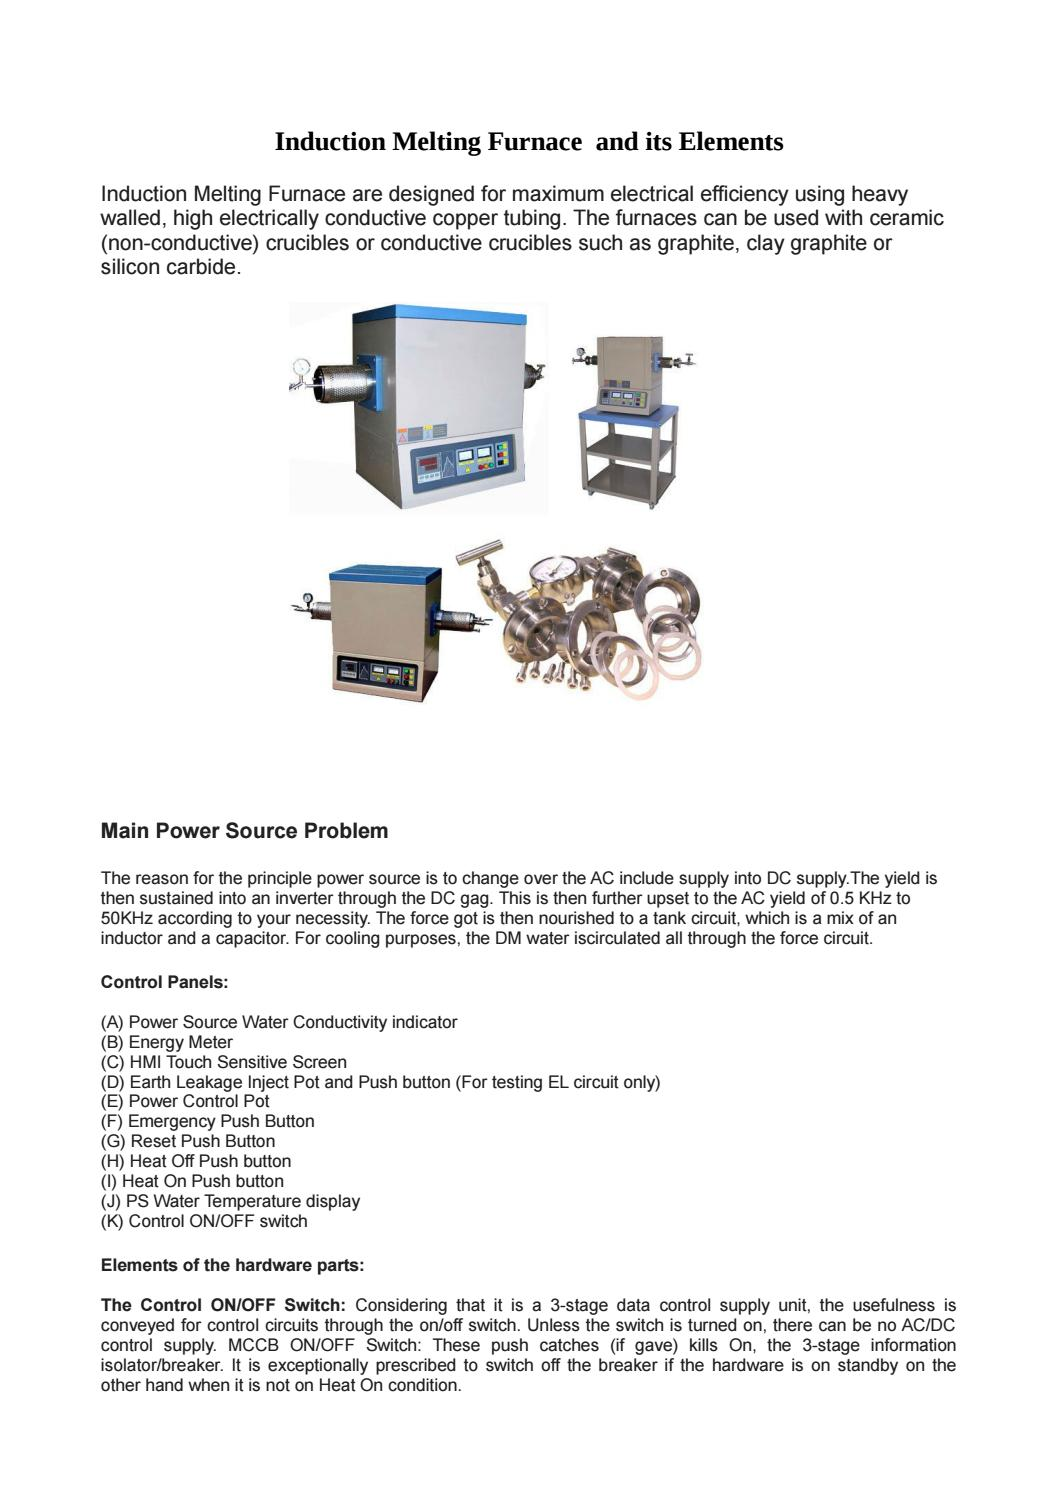 Stead fast induction melting furnace by Stead Fast Engineers